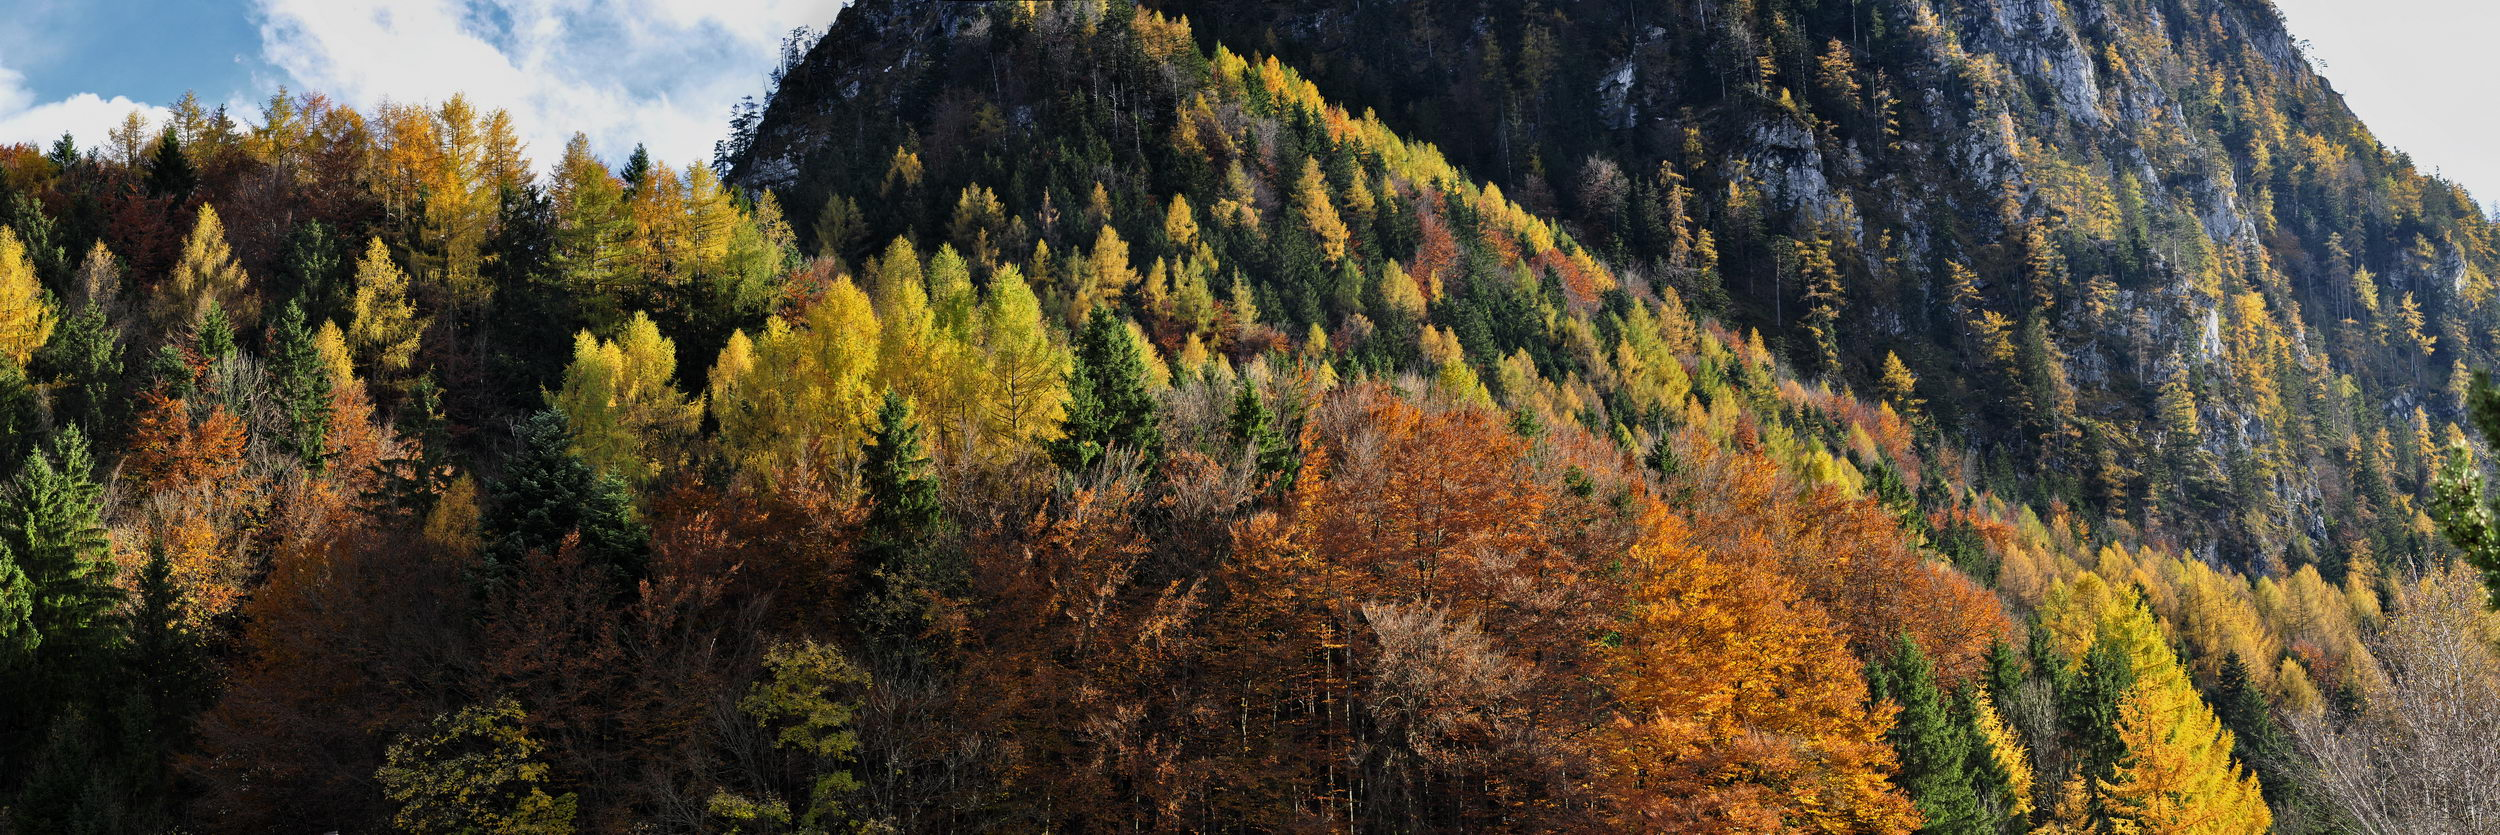 Pano_herbst